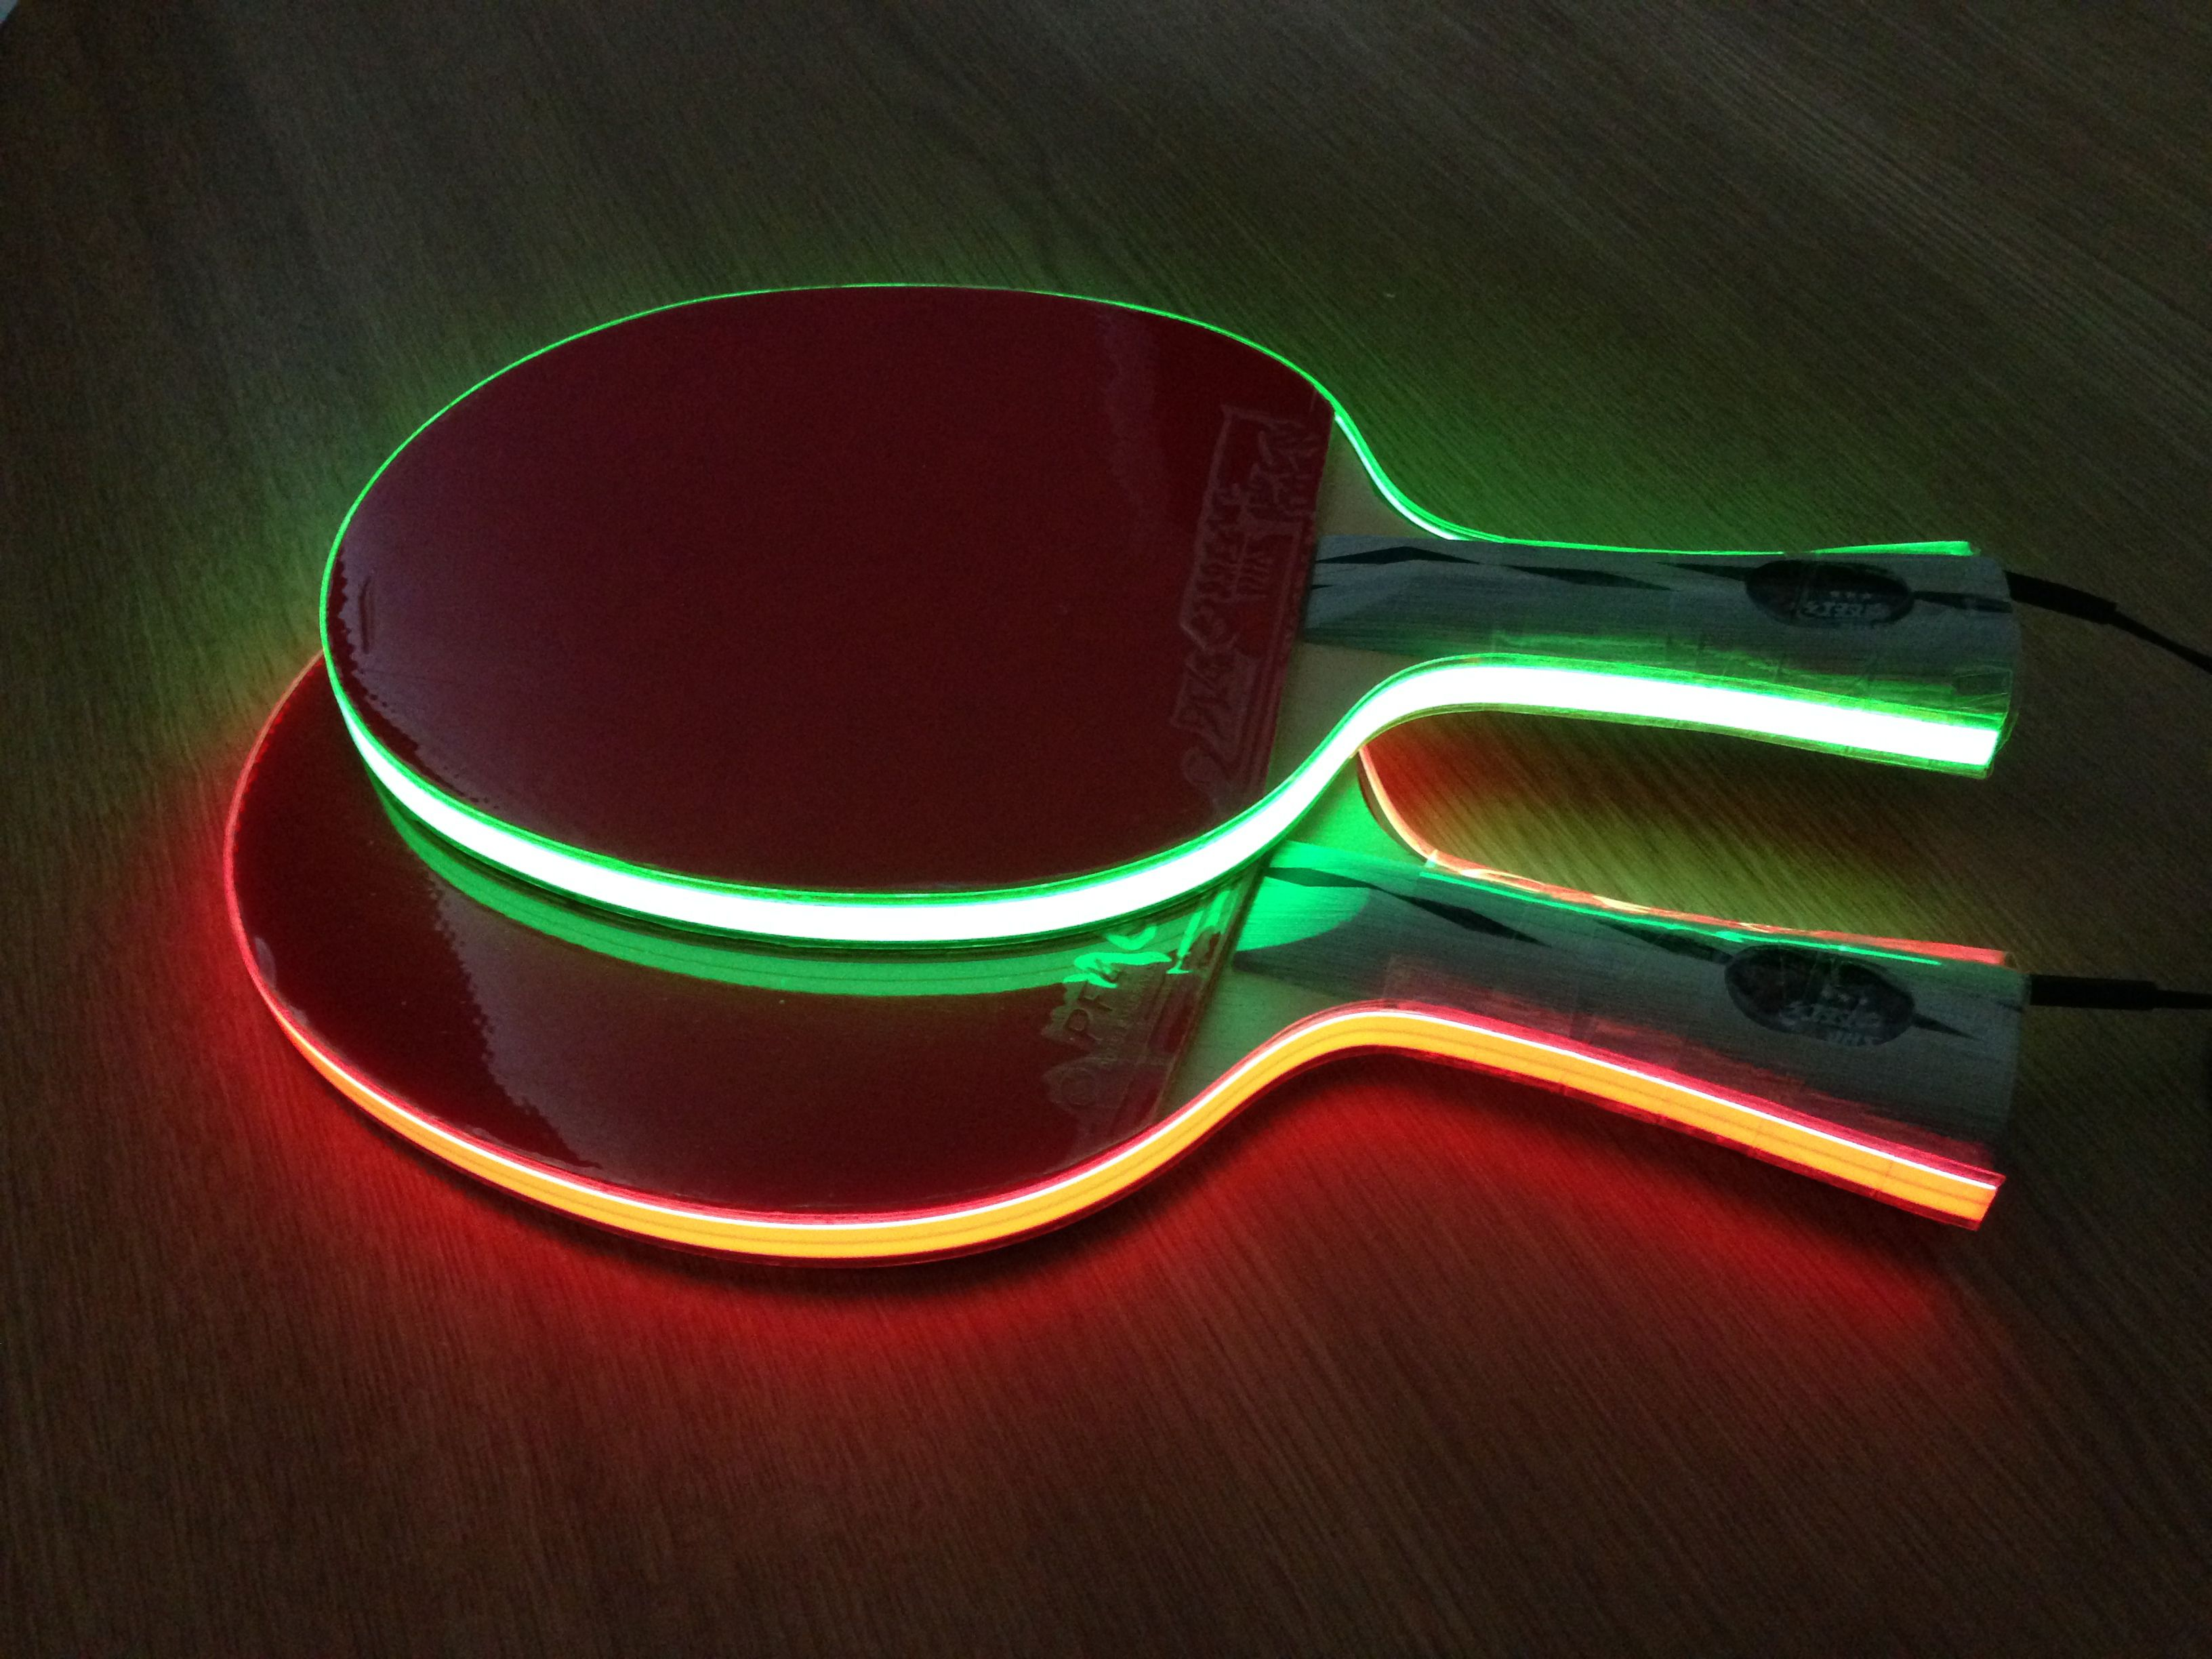 This glowing table tennis paddles are called light tape table this glowing table tennis paddles are called light tape table tennis bats it aloadofball Image collections